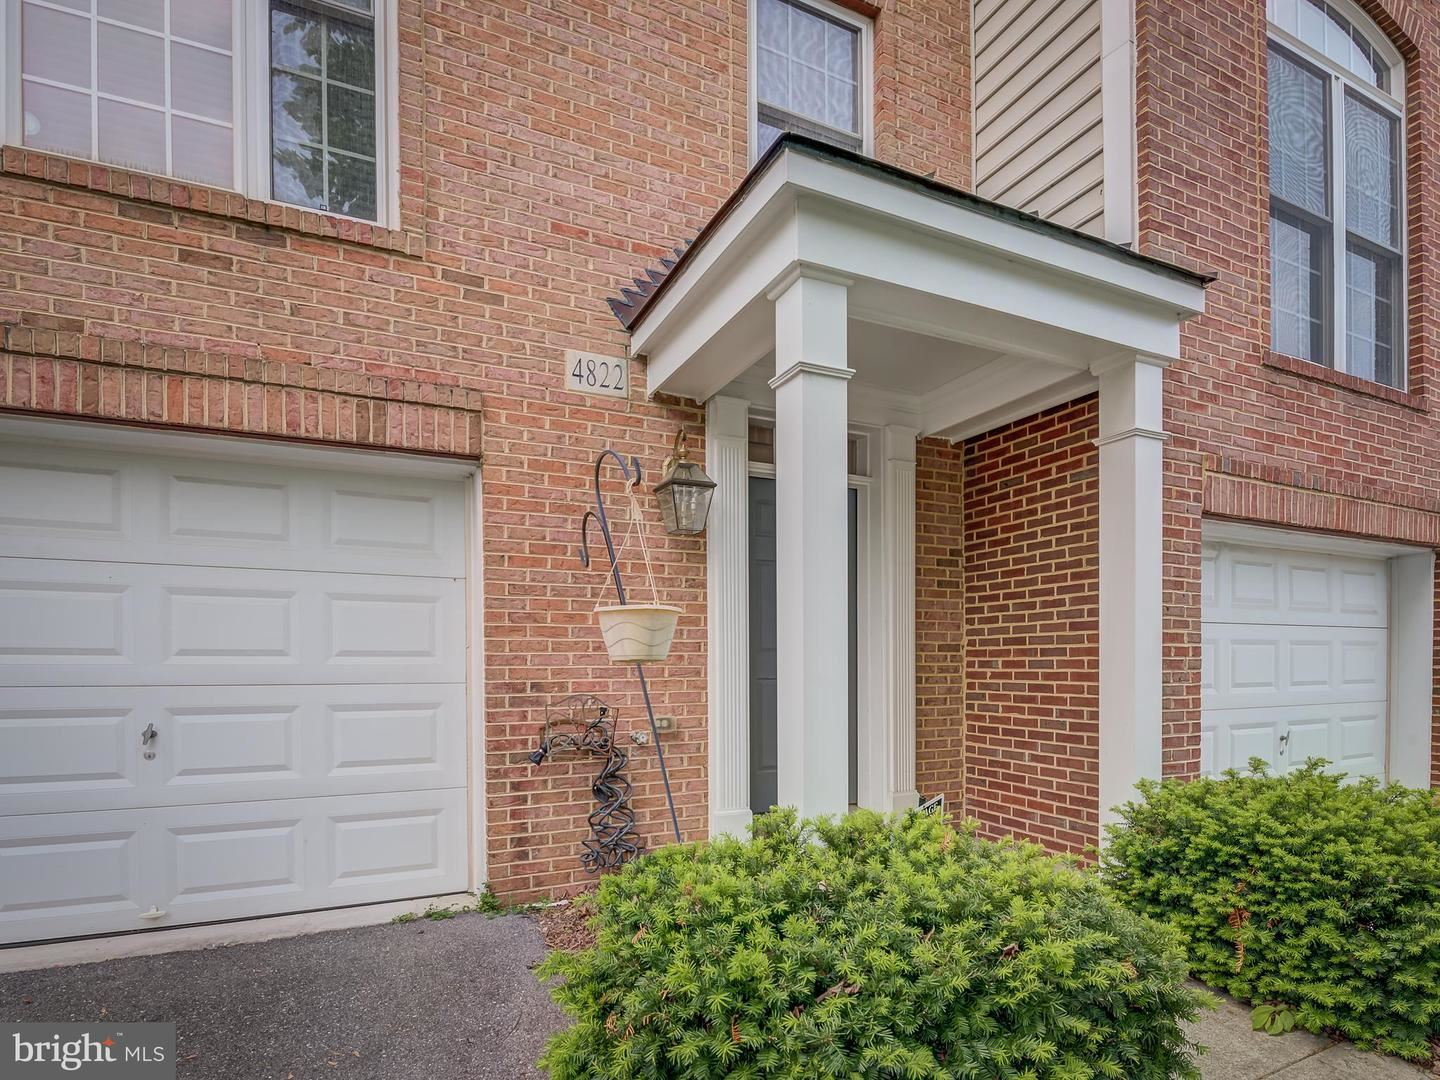 4822 LEE HOLLOW PL, Ellicott City, MD 21043 - MLS#: MDHW293560